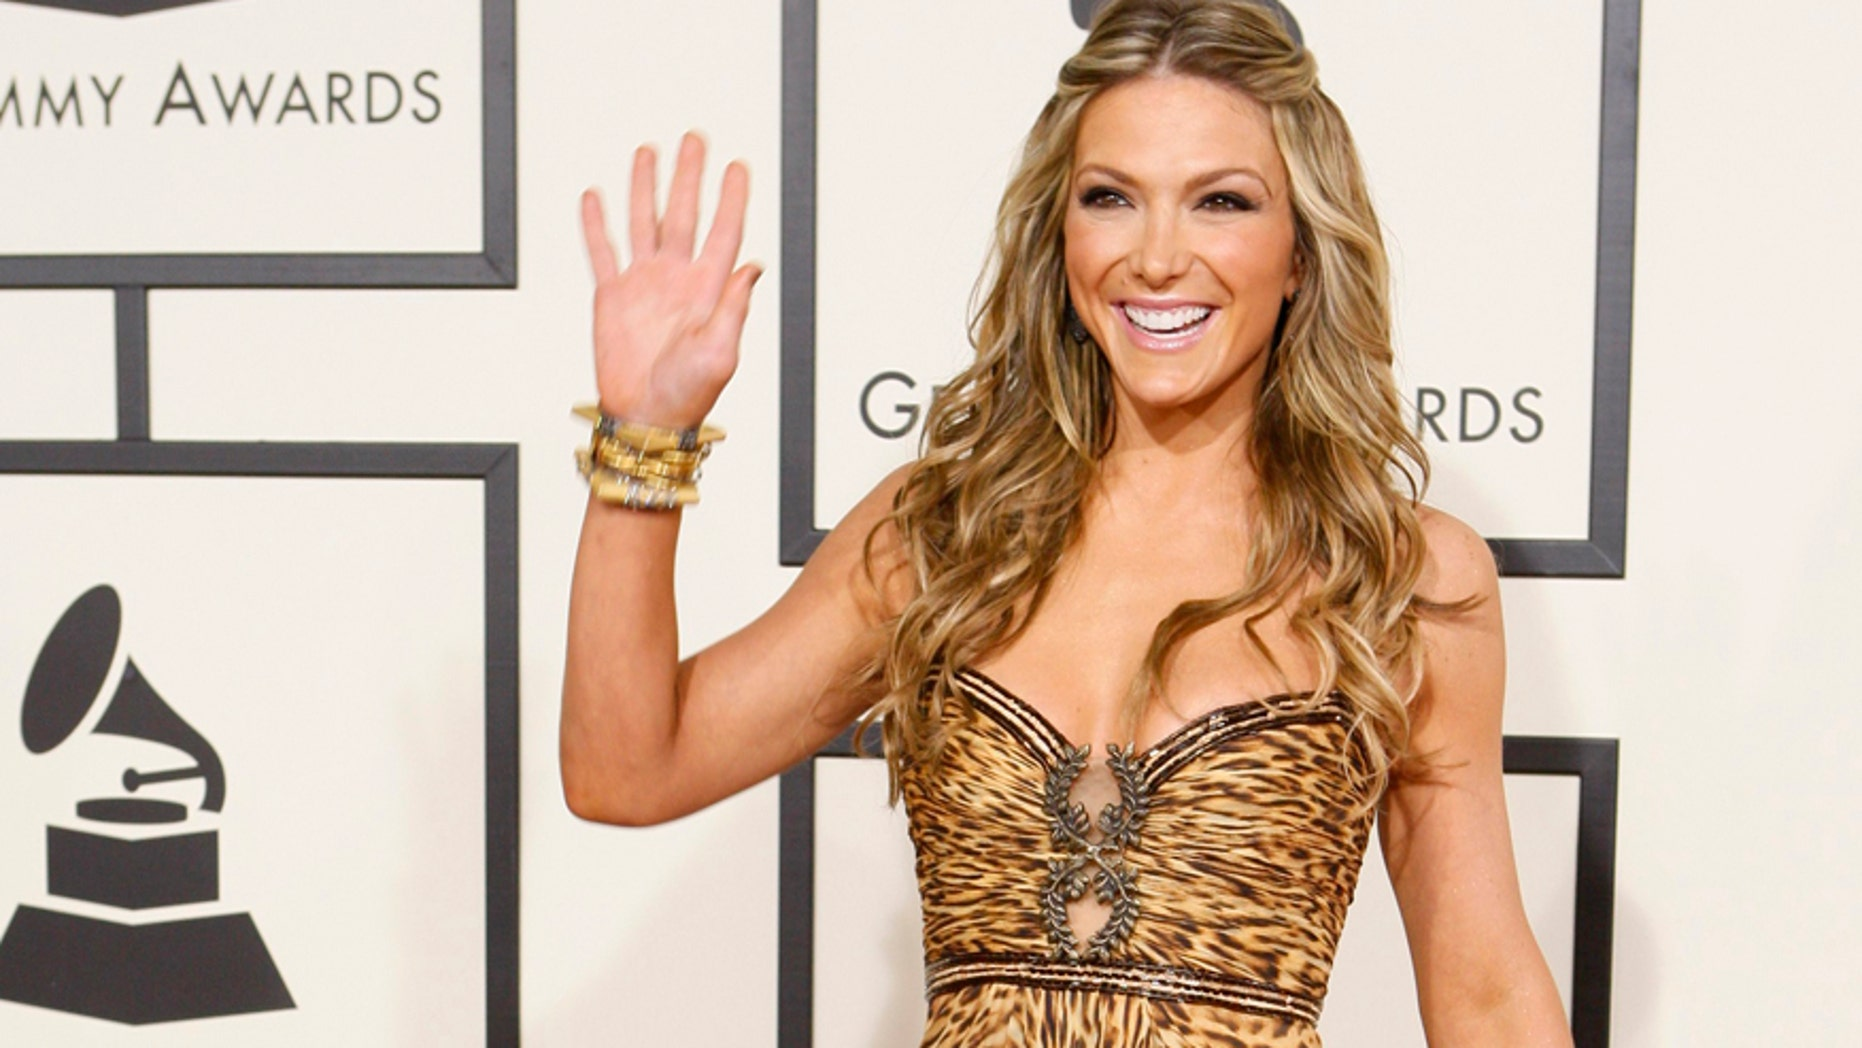 Entertainment television personality Debbie Matenopoulos arrives at the 50th Grammy Awards in Los Angeles February 10, 2008.     REUTERS/Danny Moloshok (UNITED STATES) - RTR1WXO7